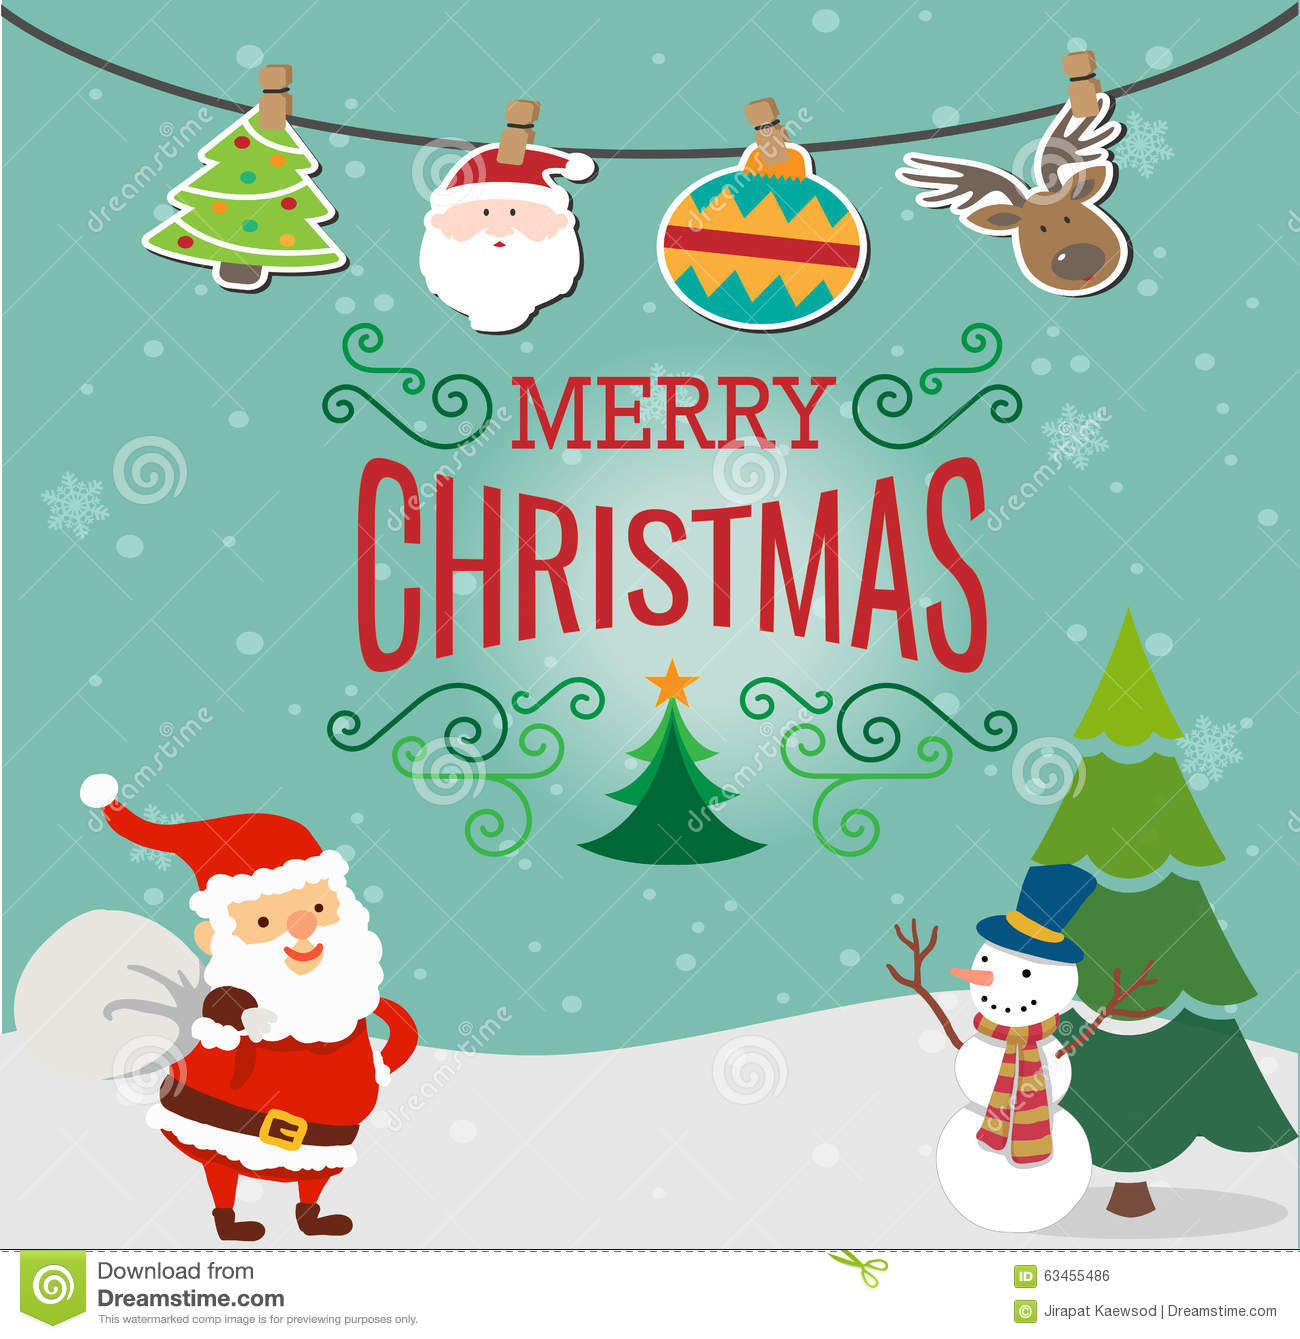 Merry christmas card stock illustration. Illustration of card - 63455486